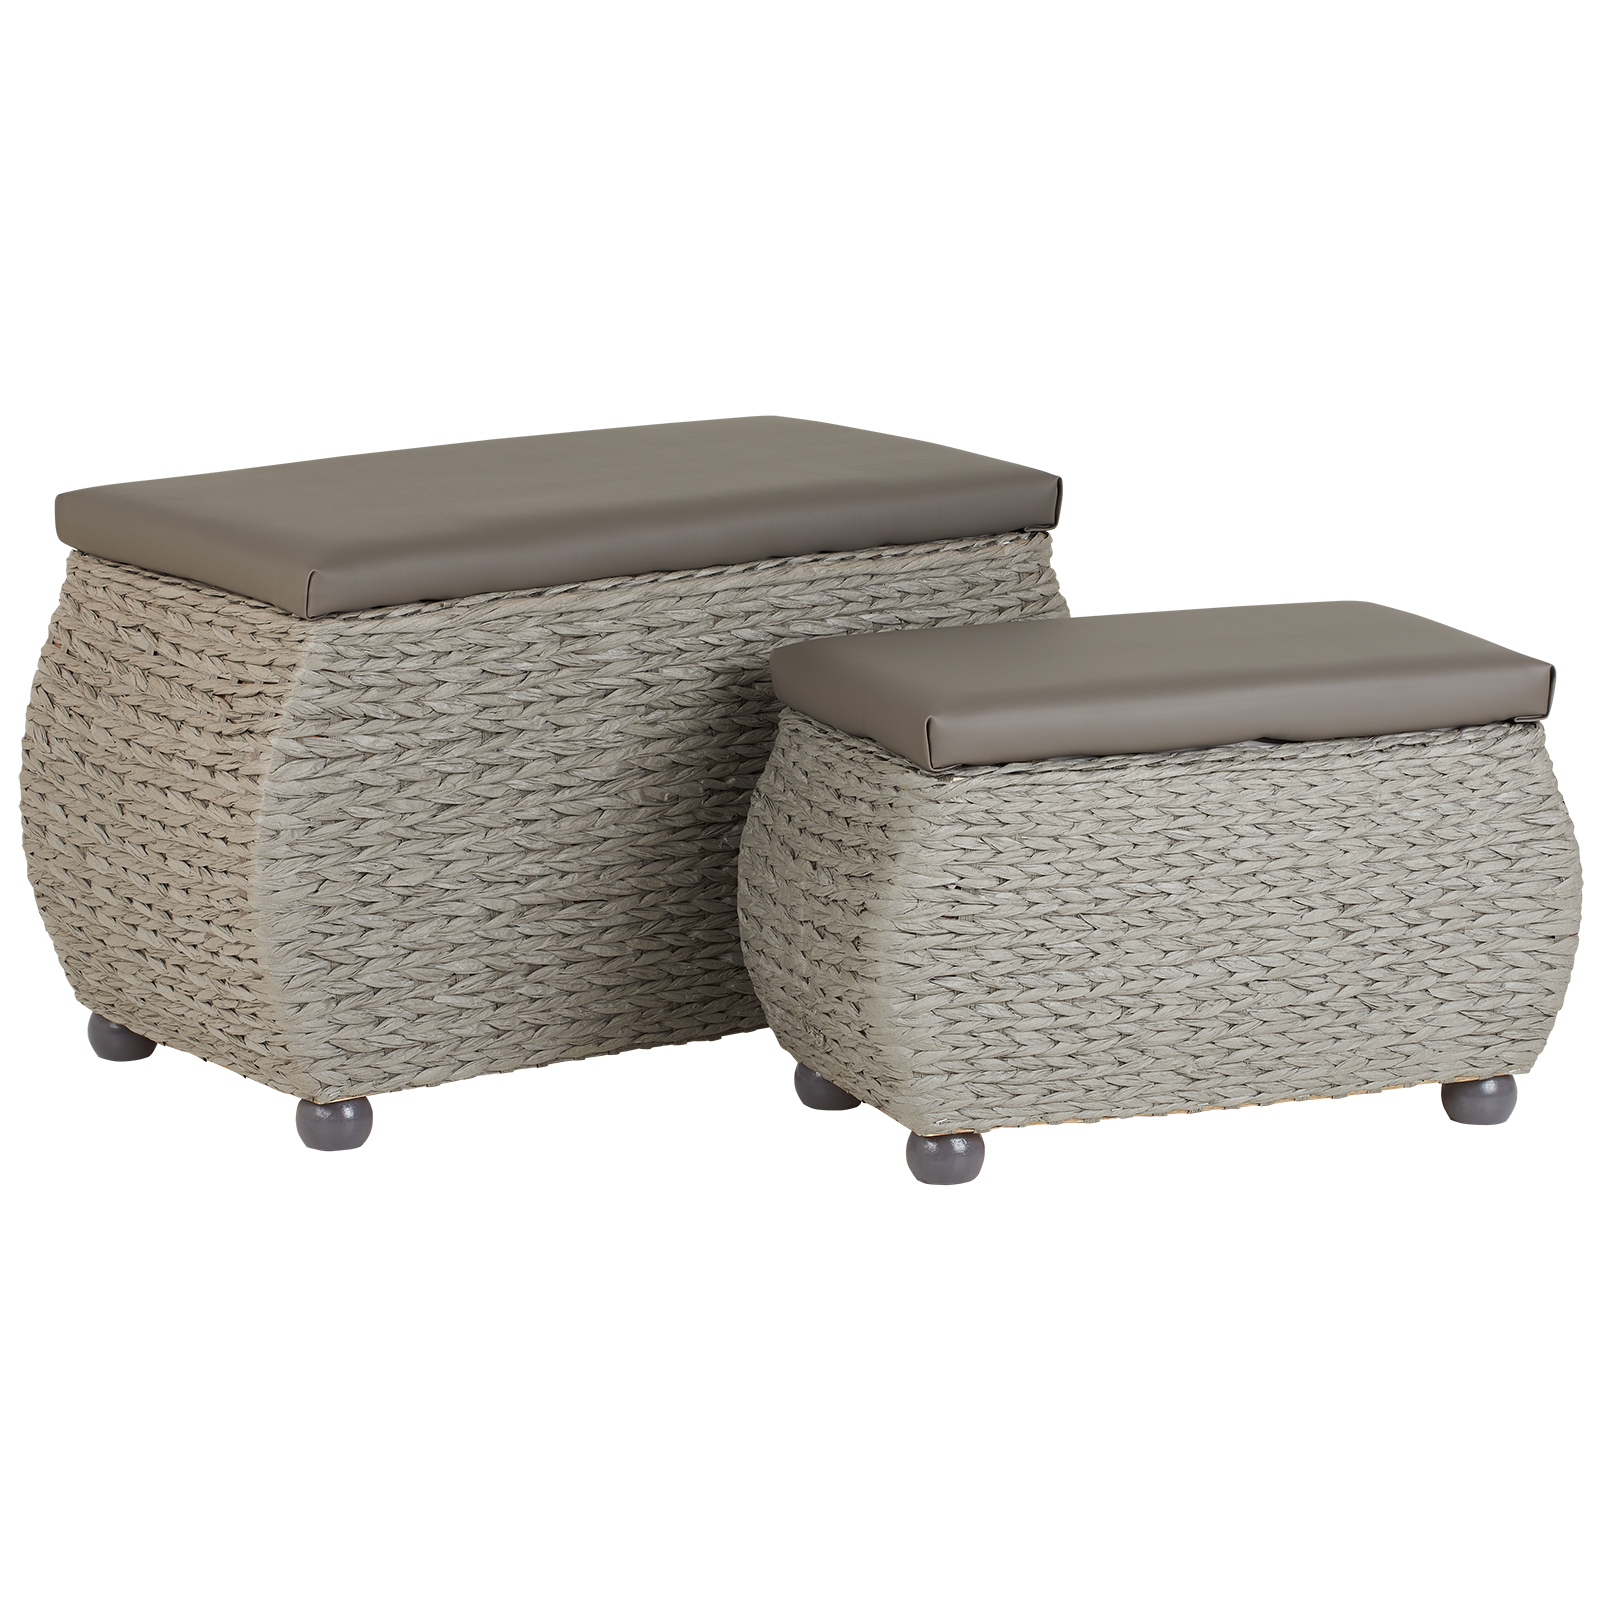 Marvelous Details About Hartleys Twin Storage Trunk Stool Bedding Blanket Rattan Wicker Box Bench Seat Creativecarmelina Interior Chair Design Creativecarmelinacom